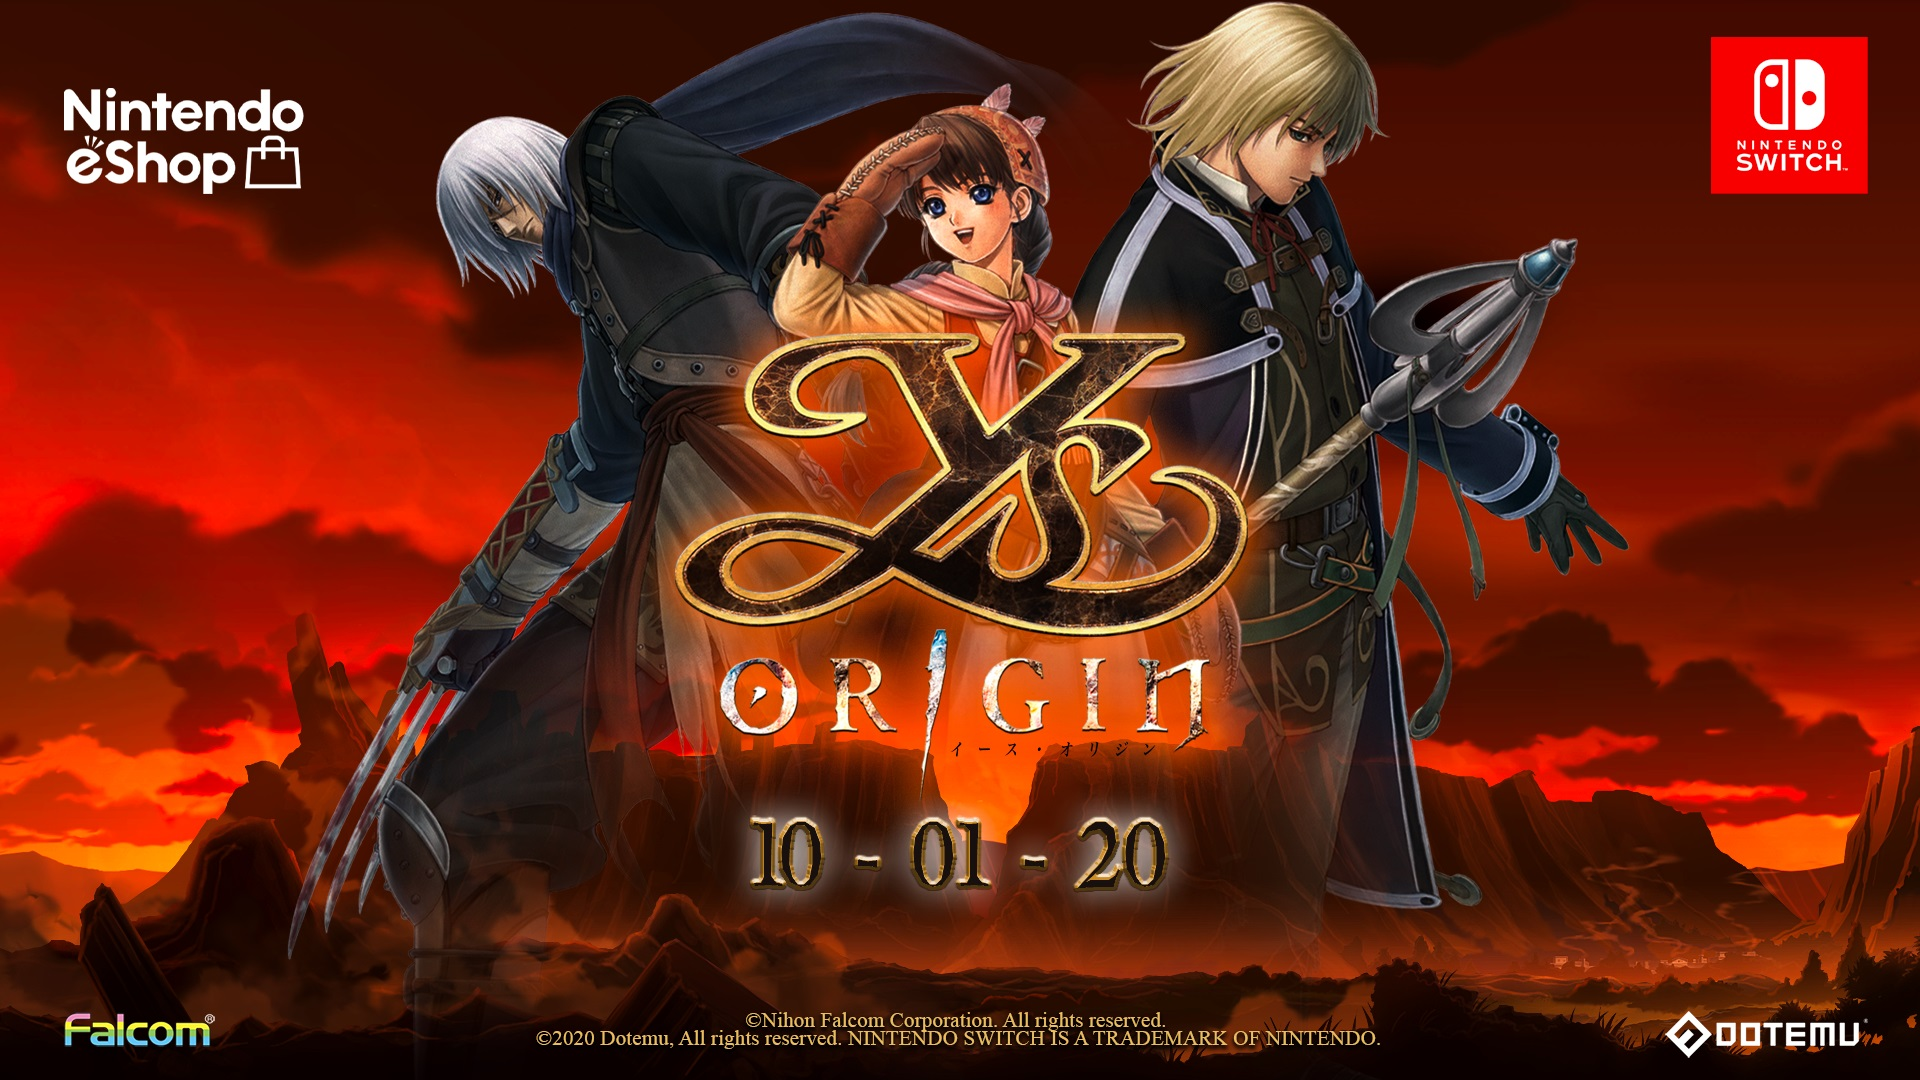 Ys Origin will hit the Nintendo Switch on October 1st!